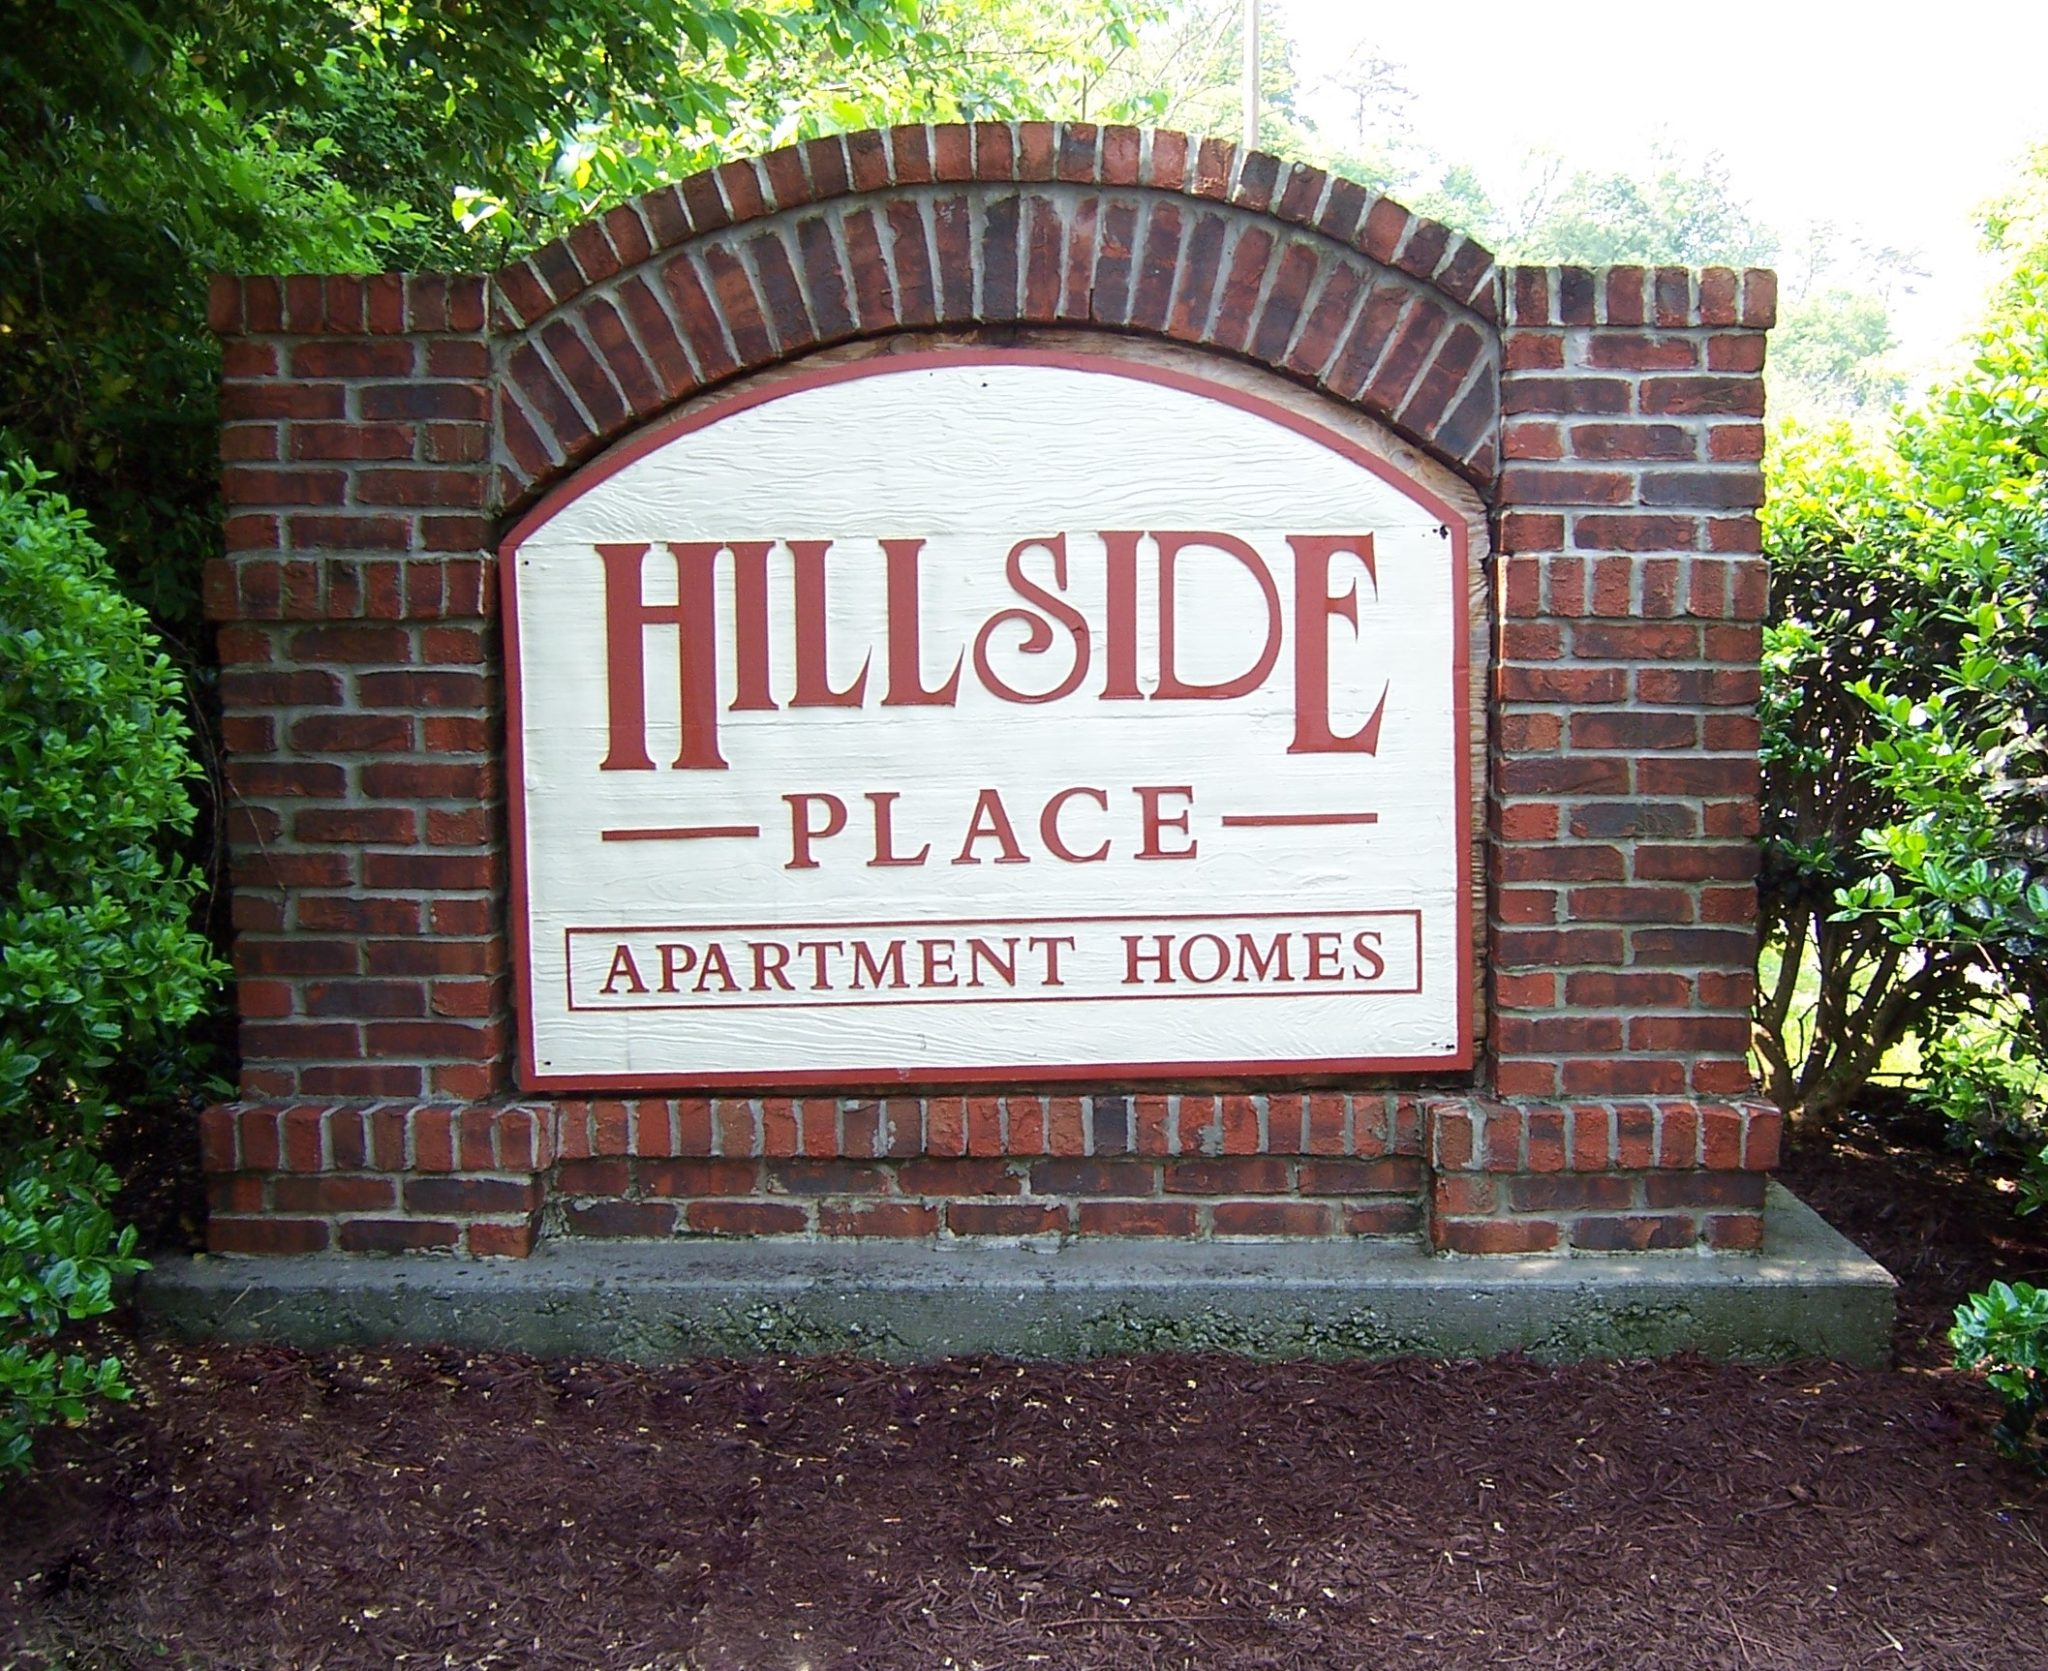 Hillside Place sign-Knoxville, TN